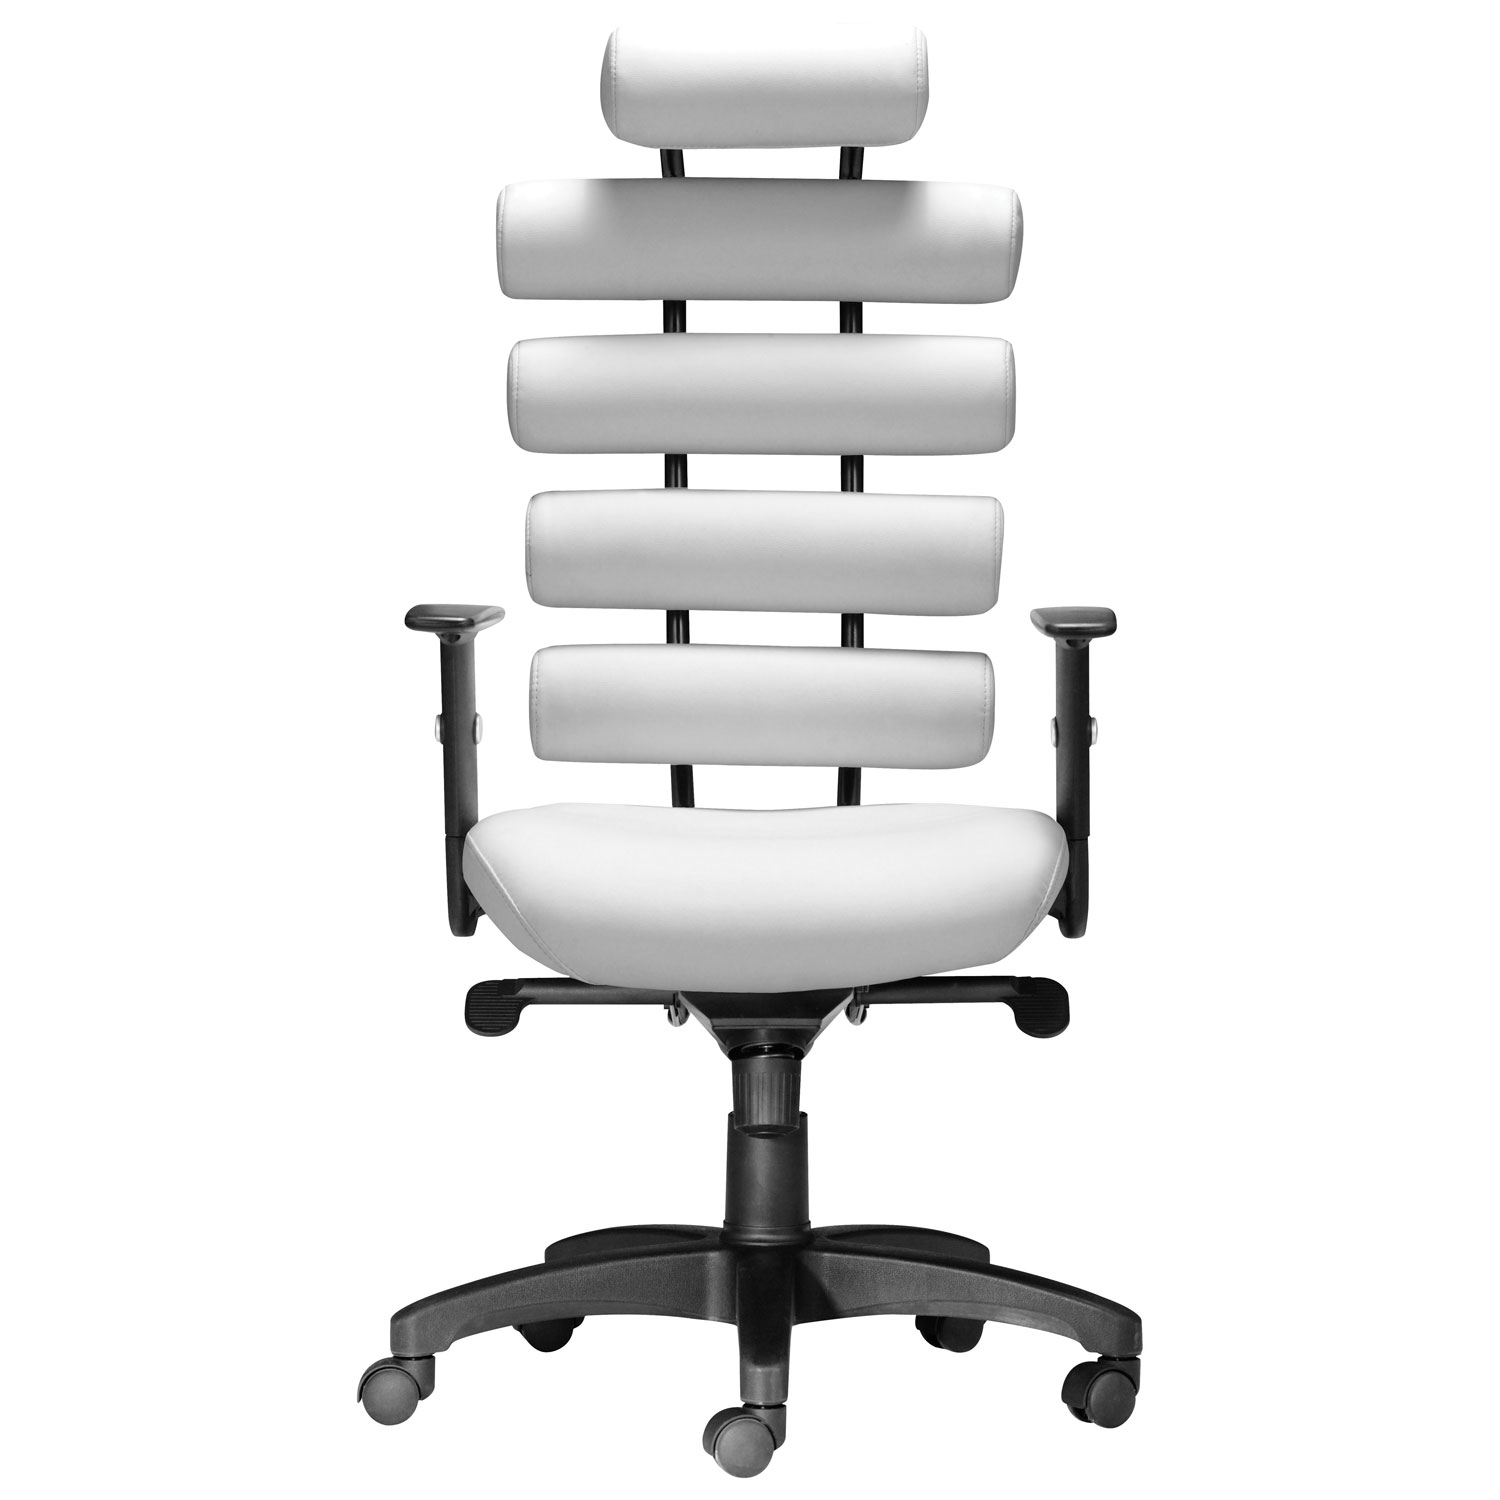 Zuo Unico Leatherette fice Chair White fice Chairs Best